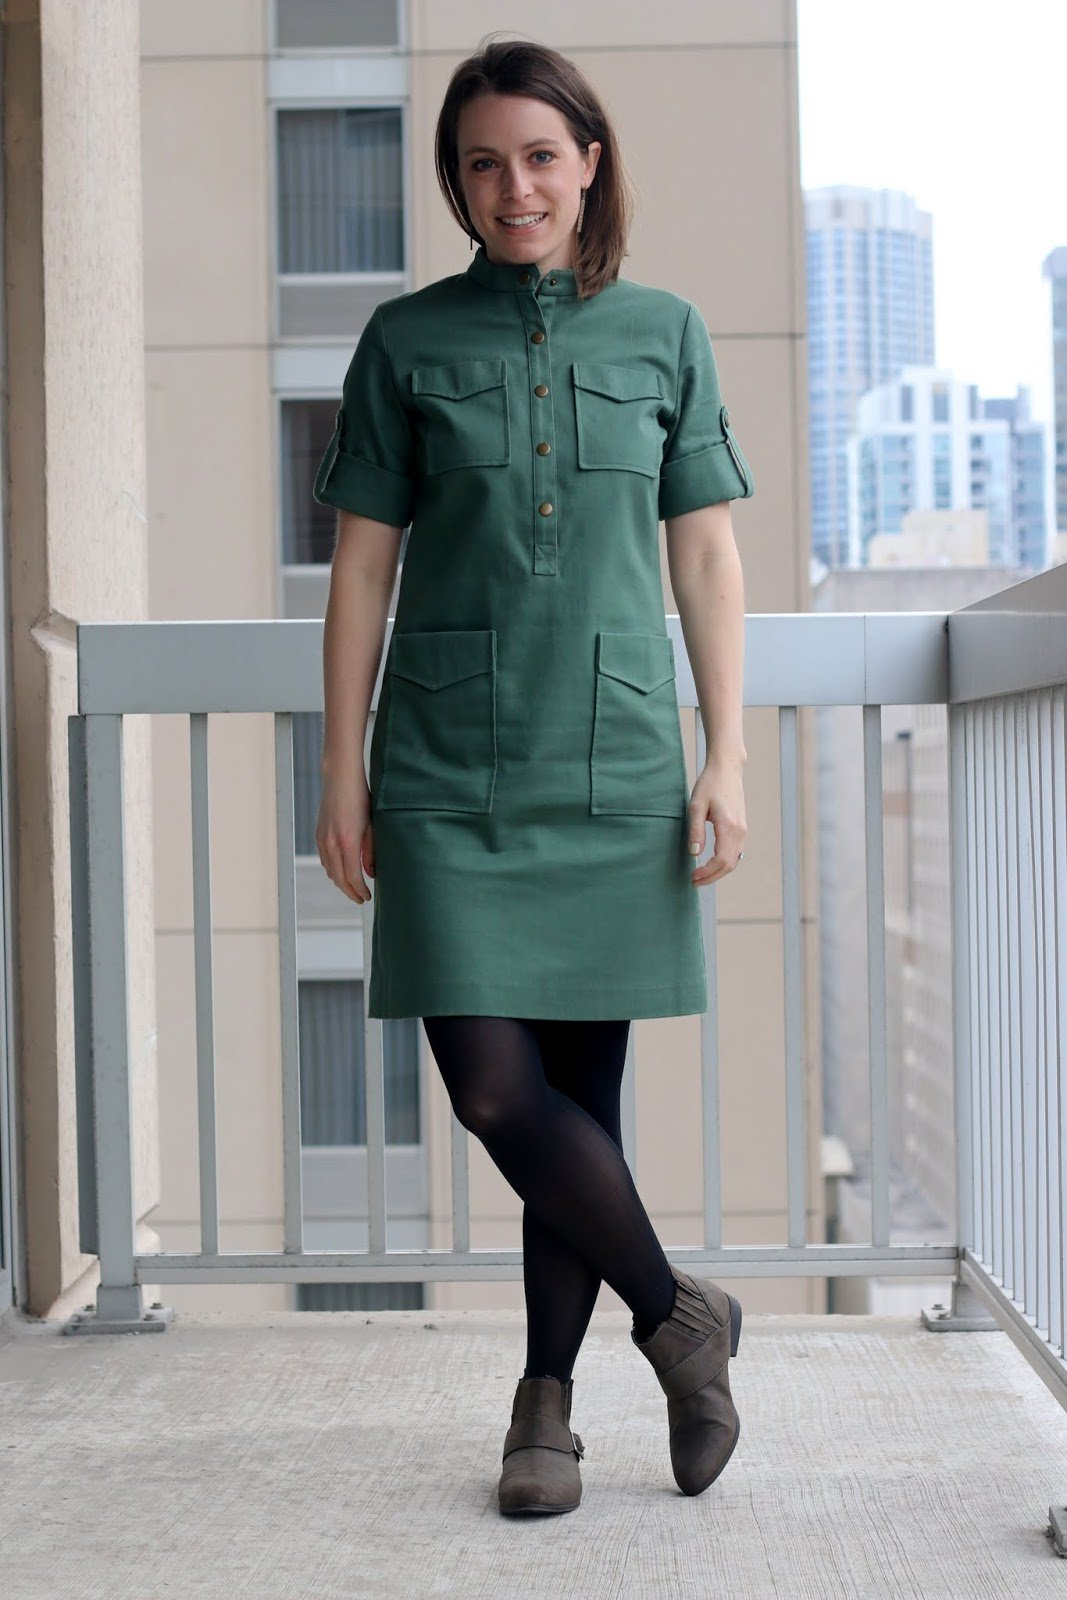 Thrifted Emerson Fry green dress with tights and gray boots | Made in the USA | wear to work outfit, office style, business casual to brunch